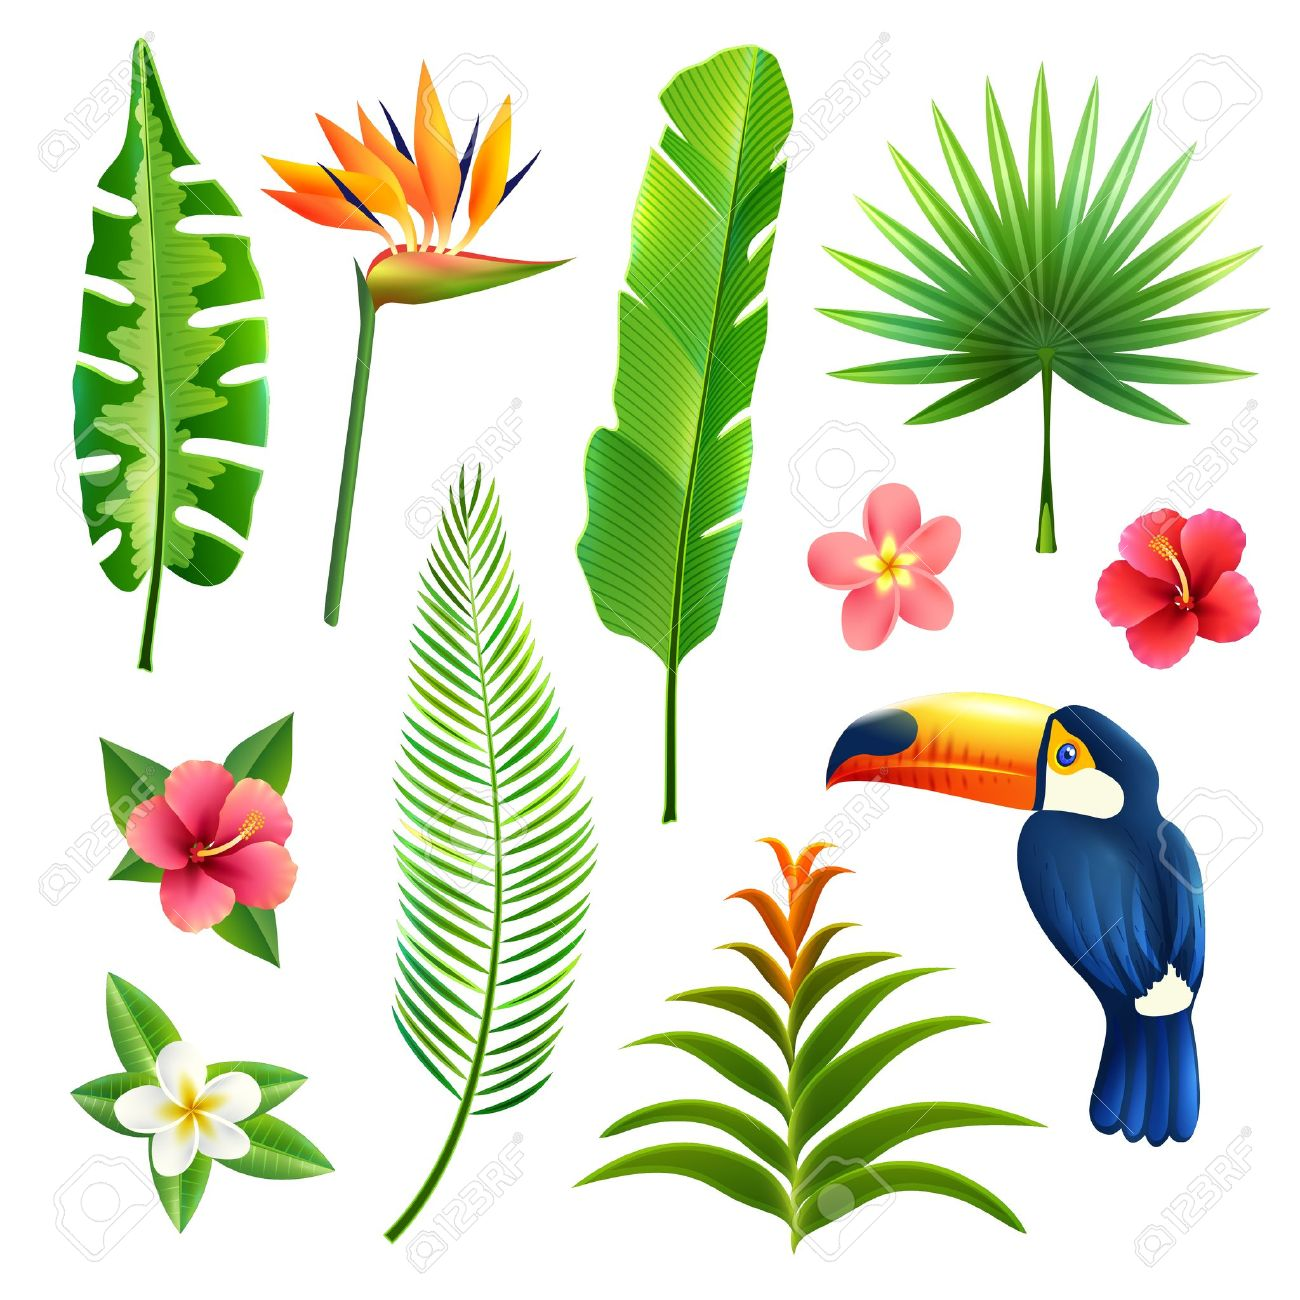 Tropical Leaves Clipart | Free download best Tropical ...